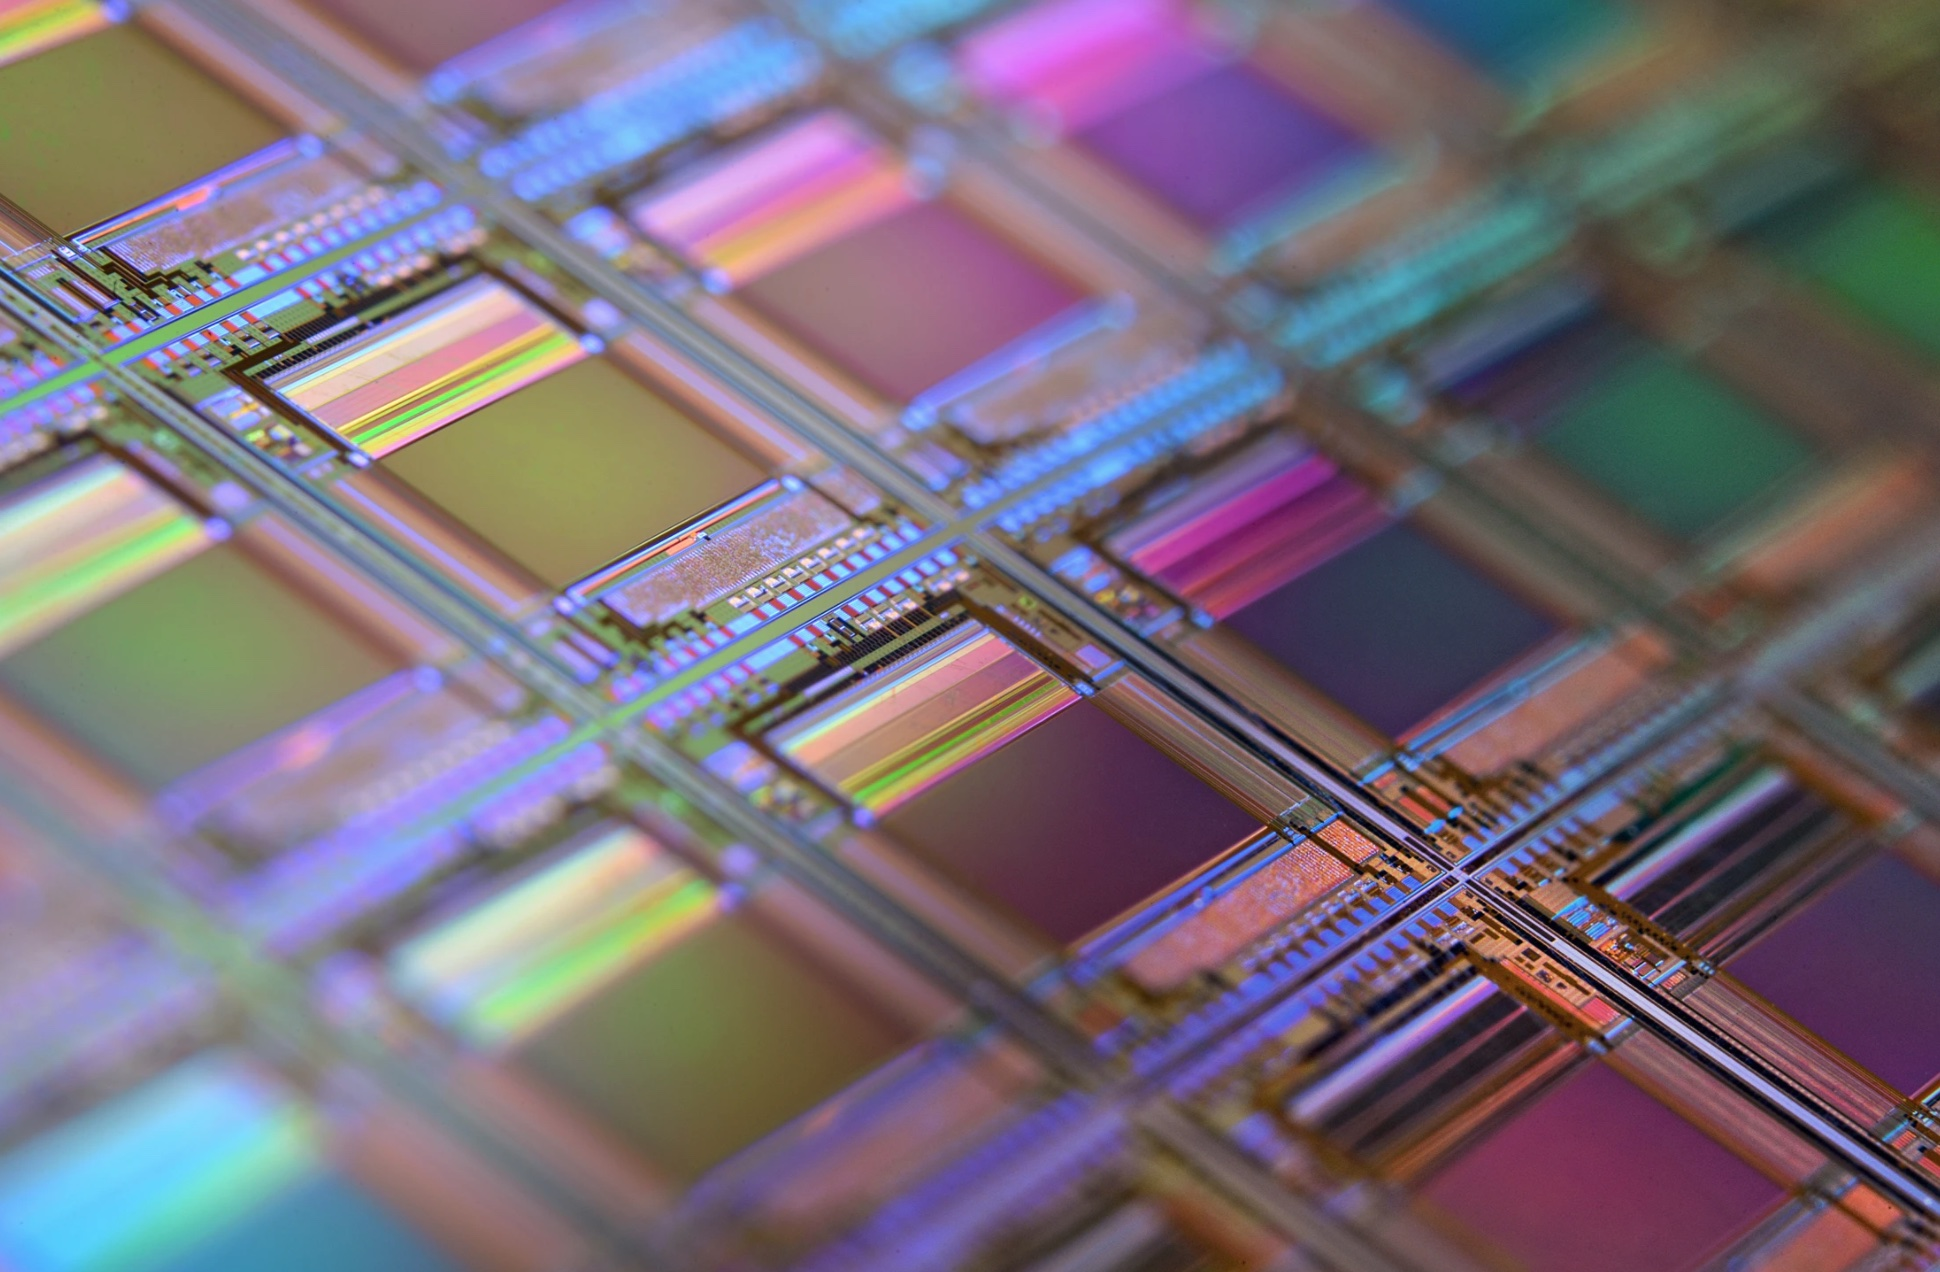 SMIC plans to expand production of 10,000 wafers on its mature 12-inch line this year-CnTechPost